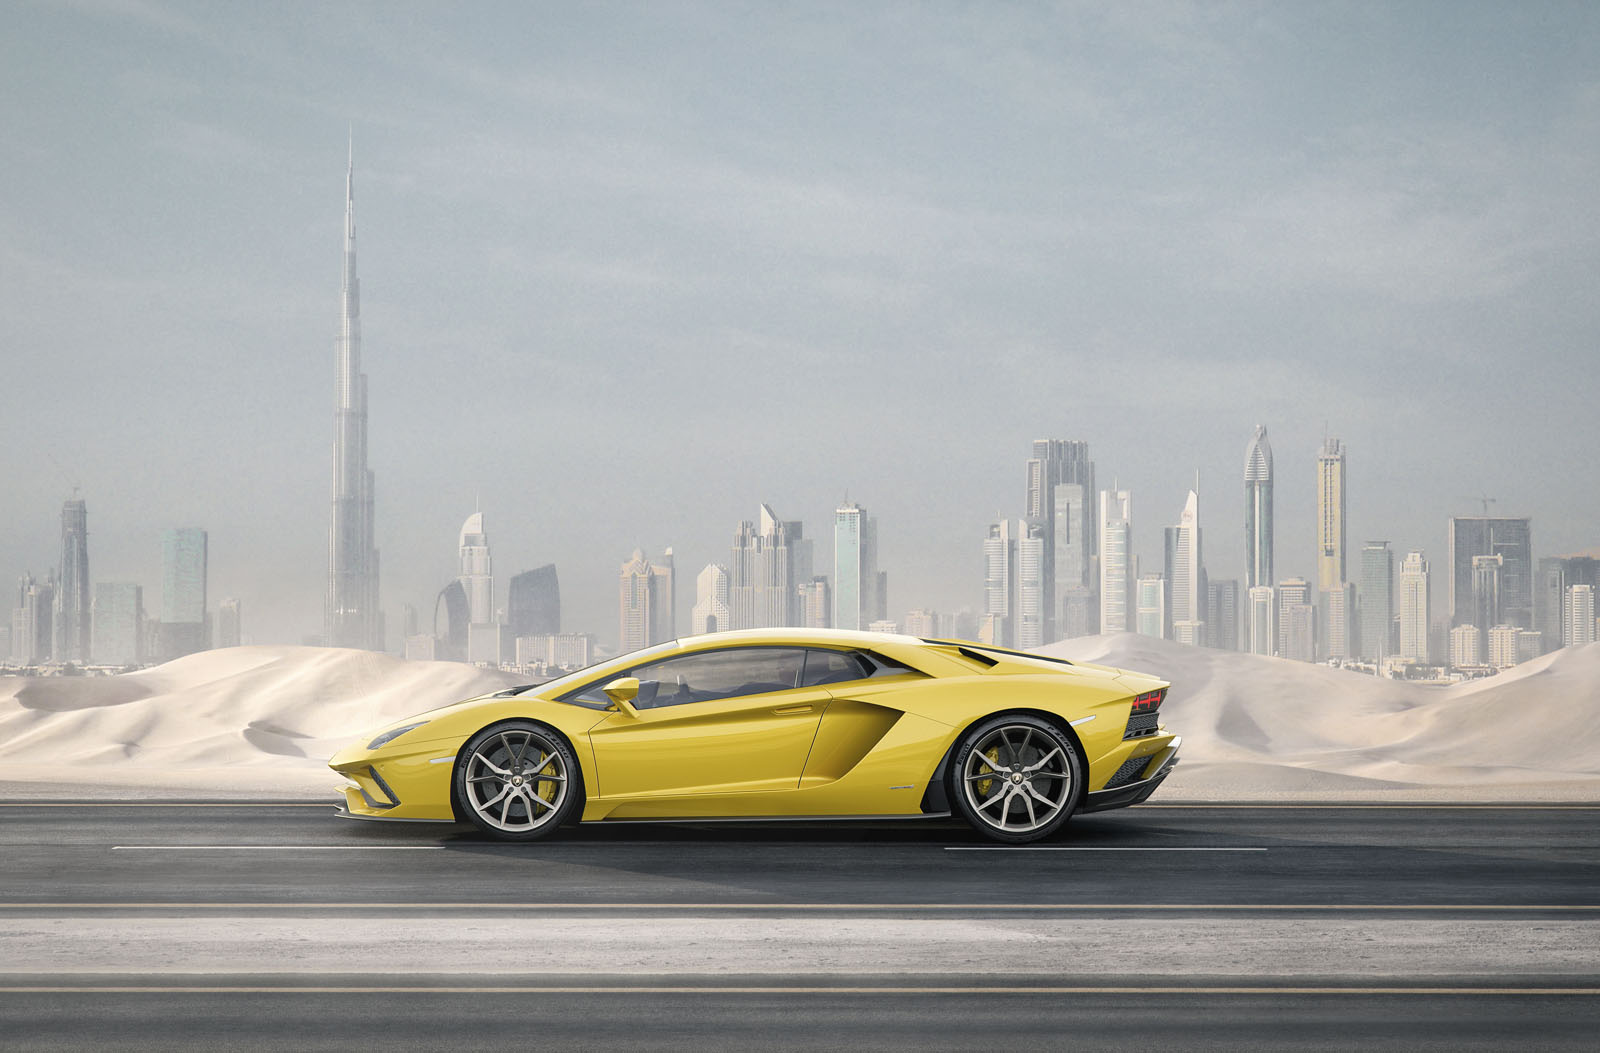 Lamborghini May Have Used A Turbocharged Engine In The Urus SUV, But Donu0027t  Expect The Same For Its Sports Cars.